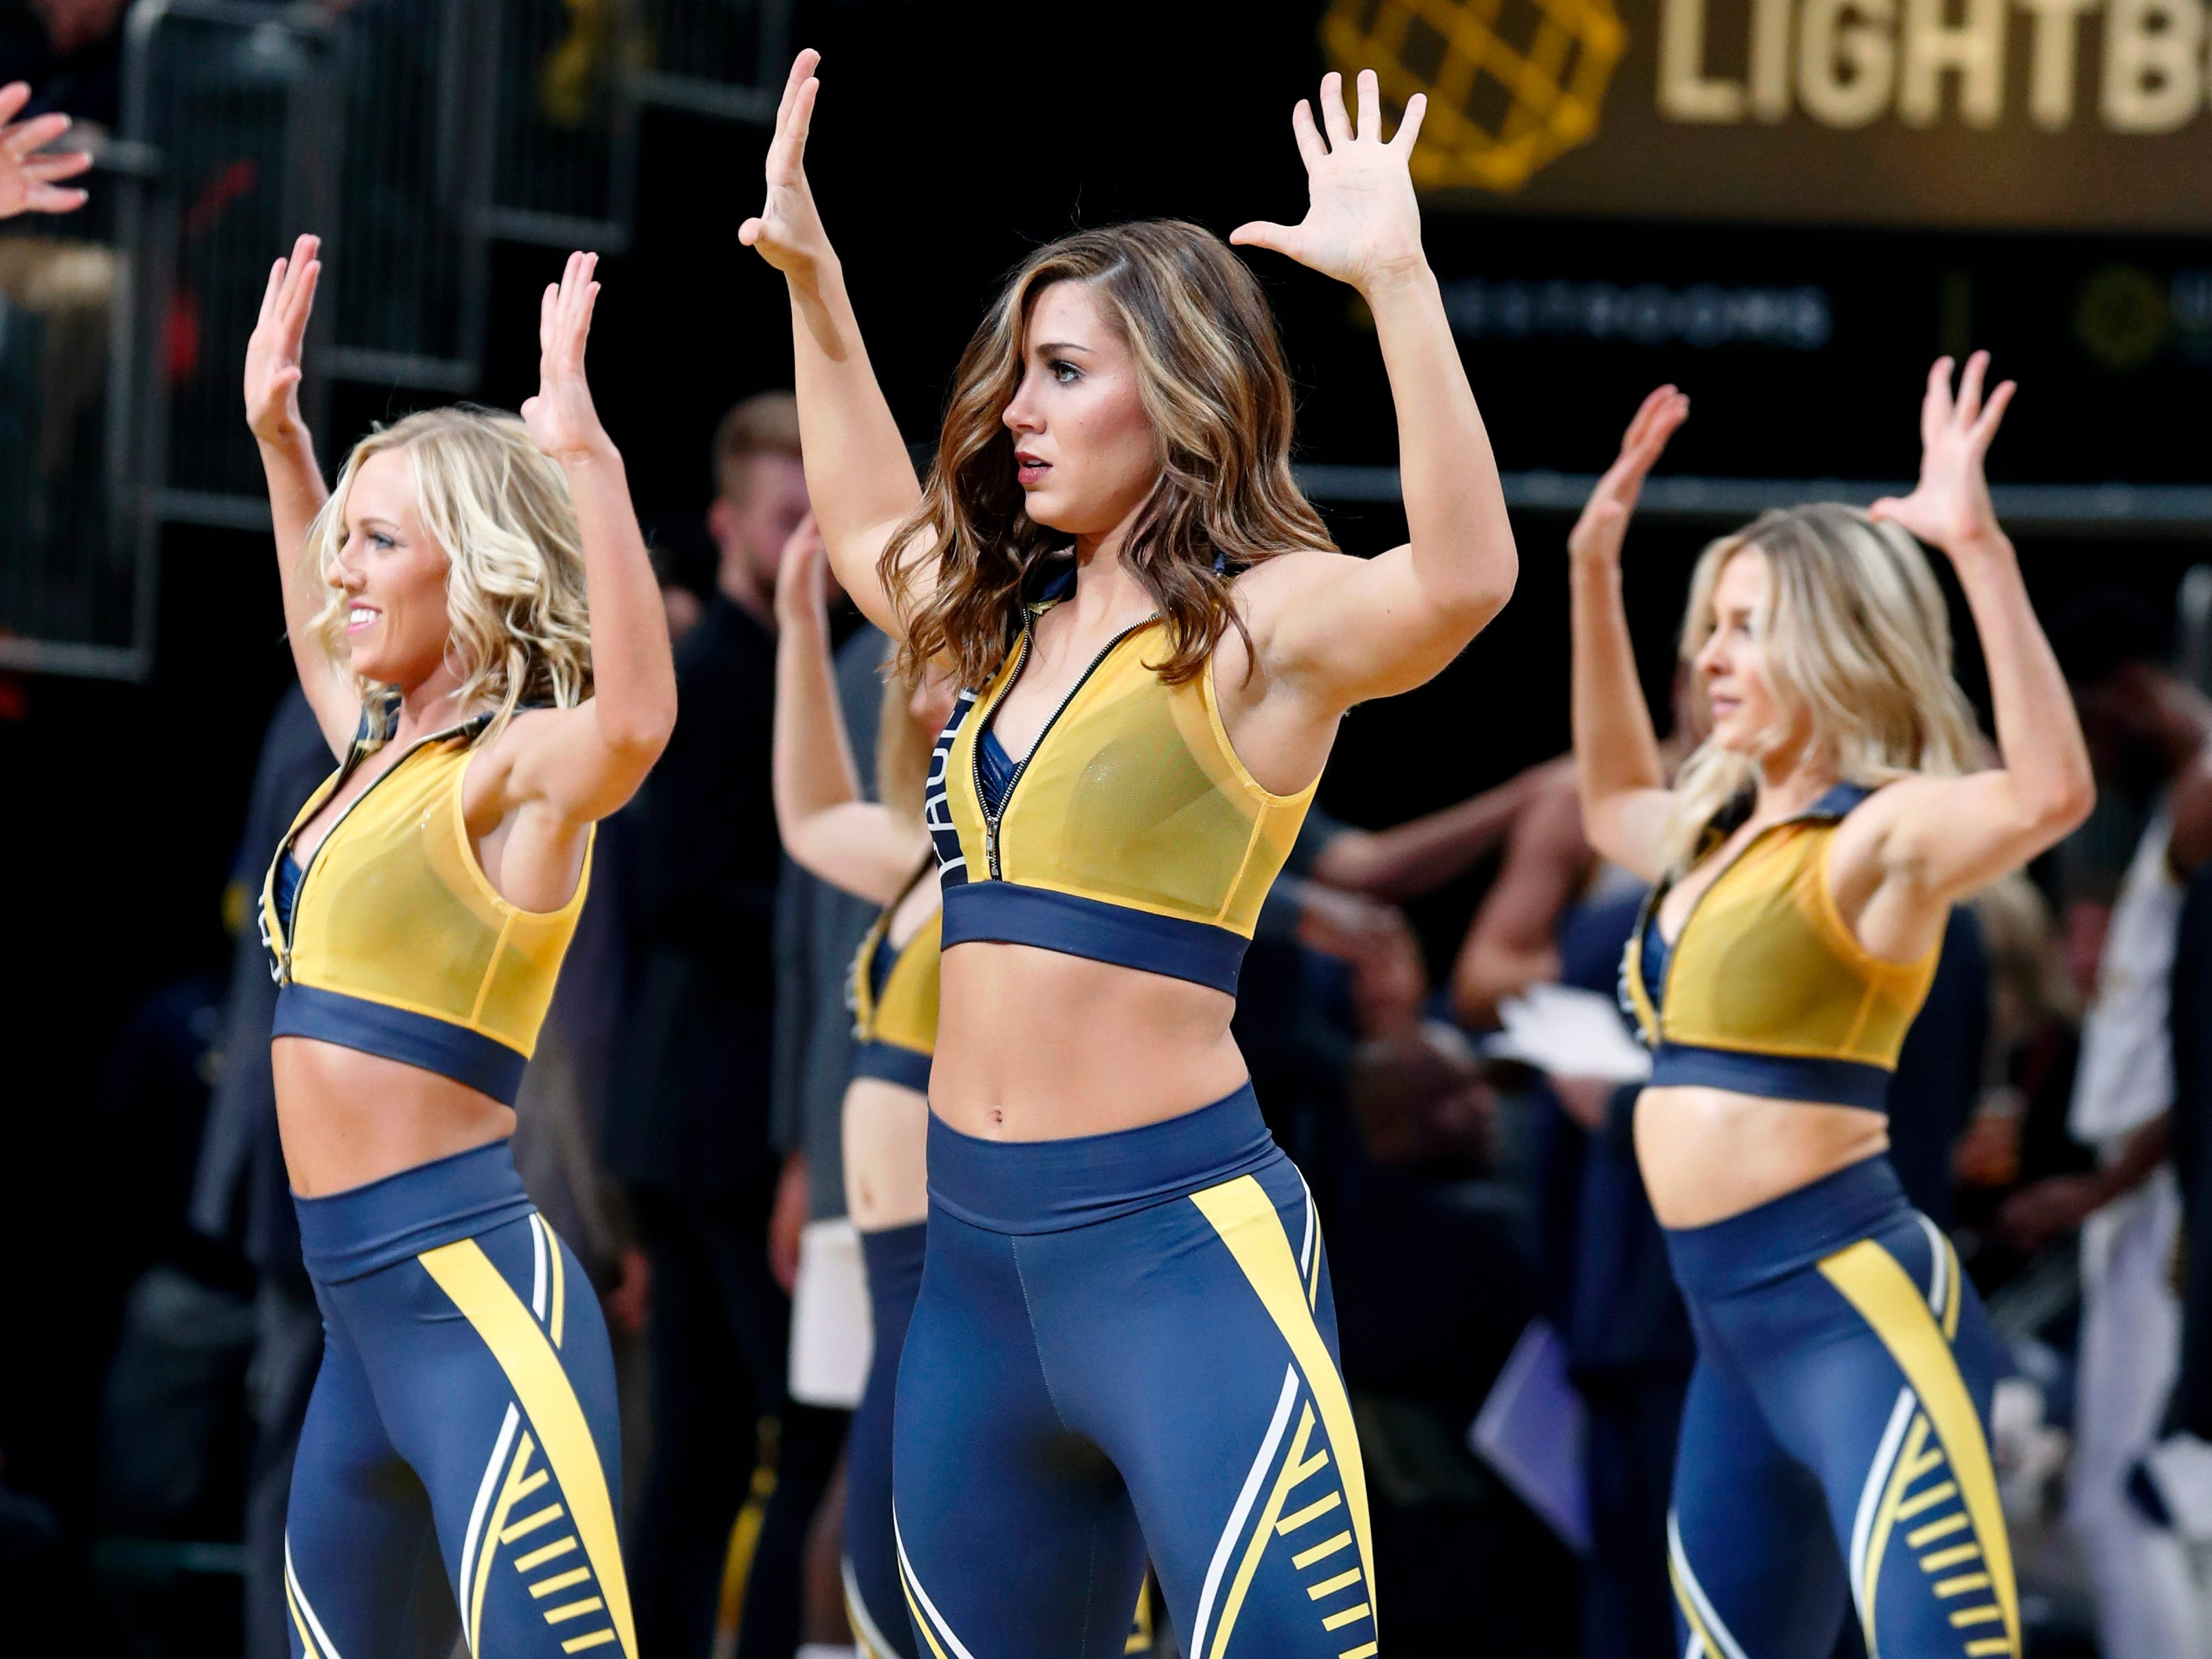 March 5: The Indiana Pacers Pacemates perform a dance routine during the game against the Chicago Bulls at Bankers Life Fieldhouse.